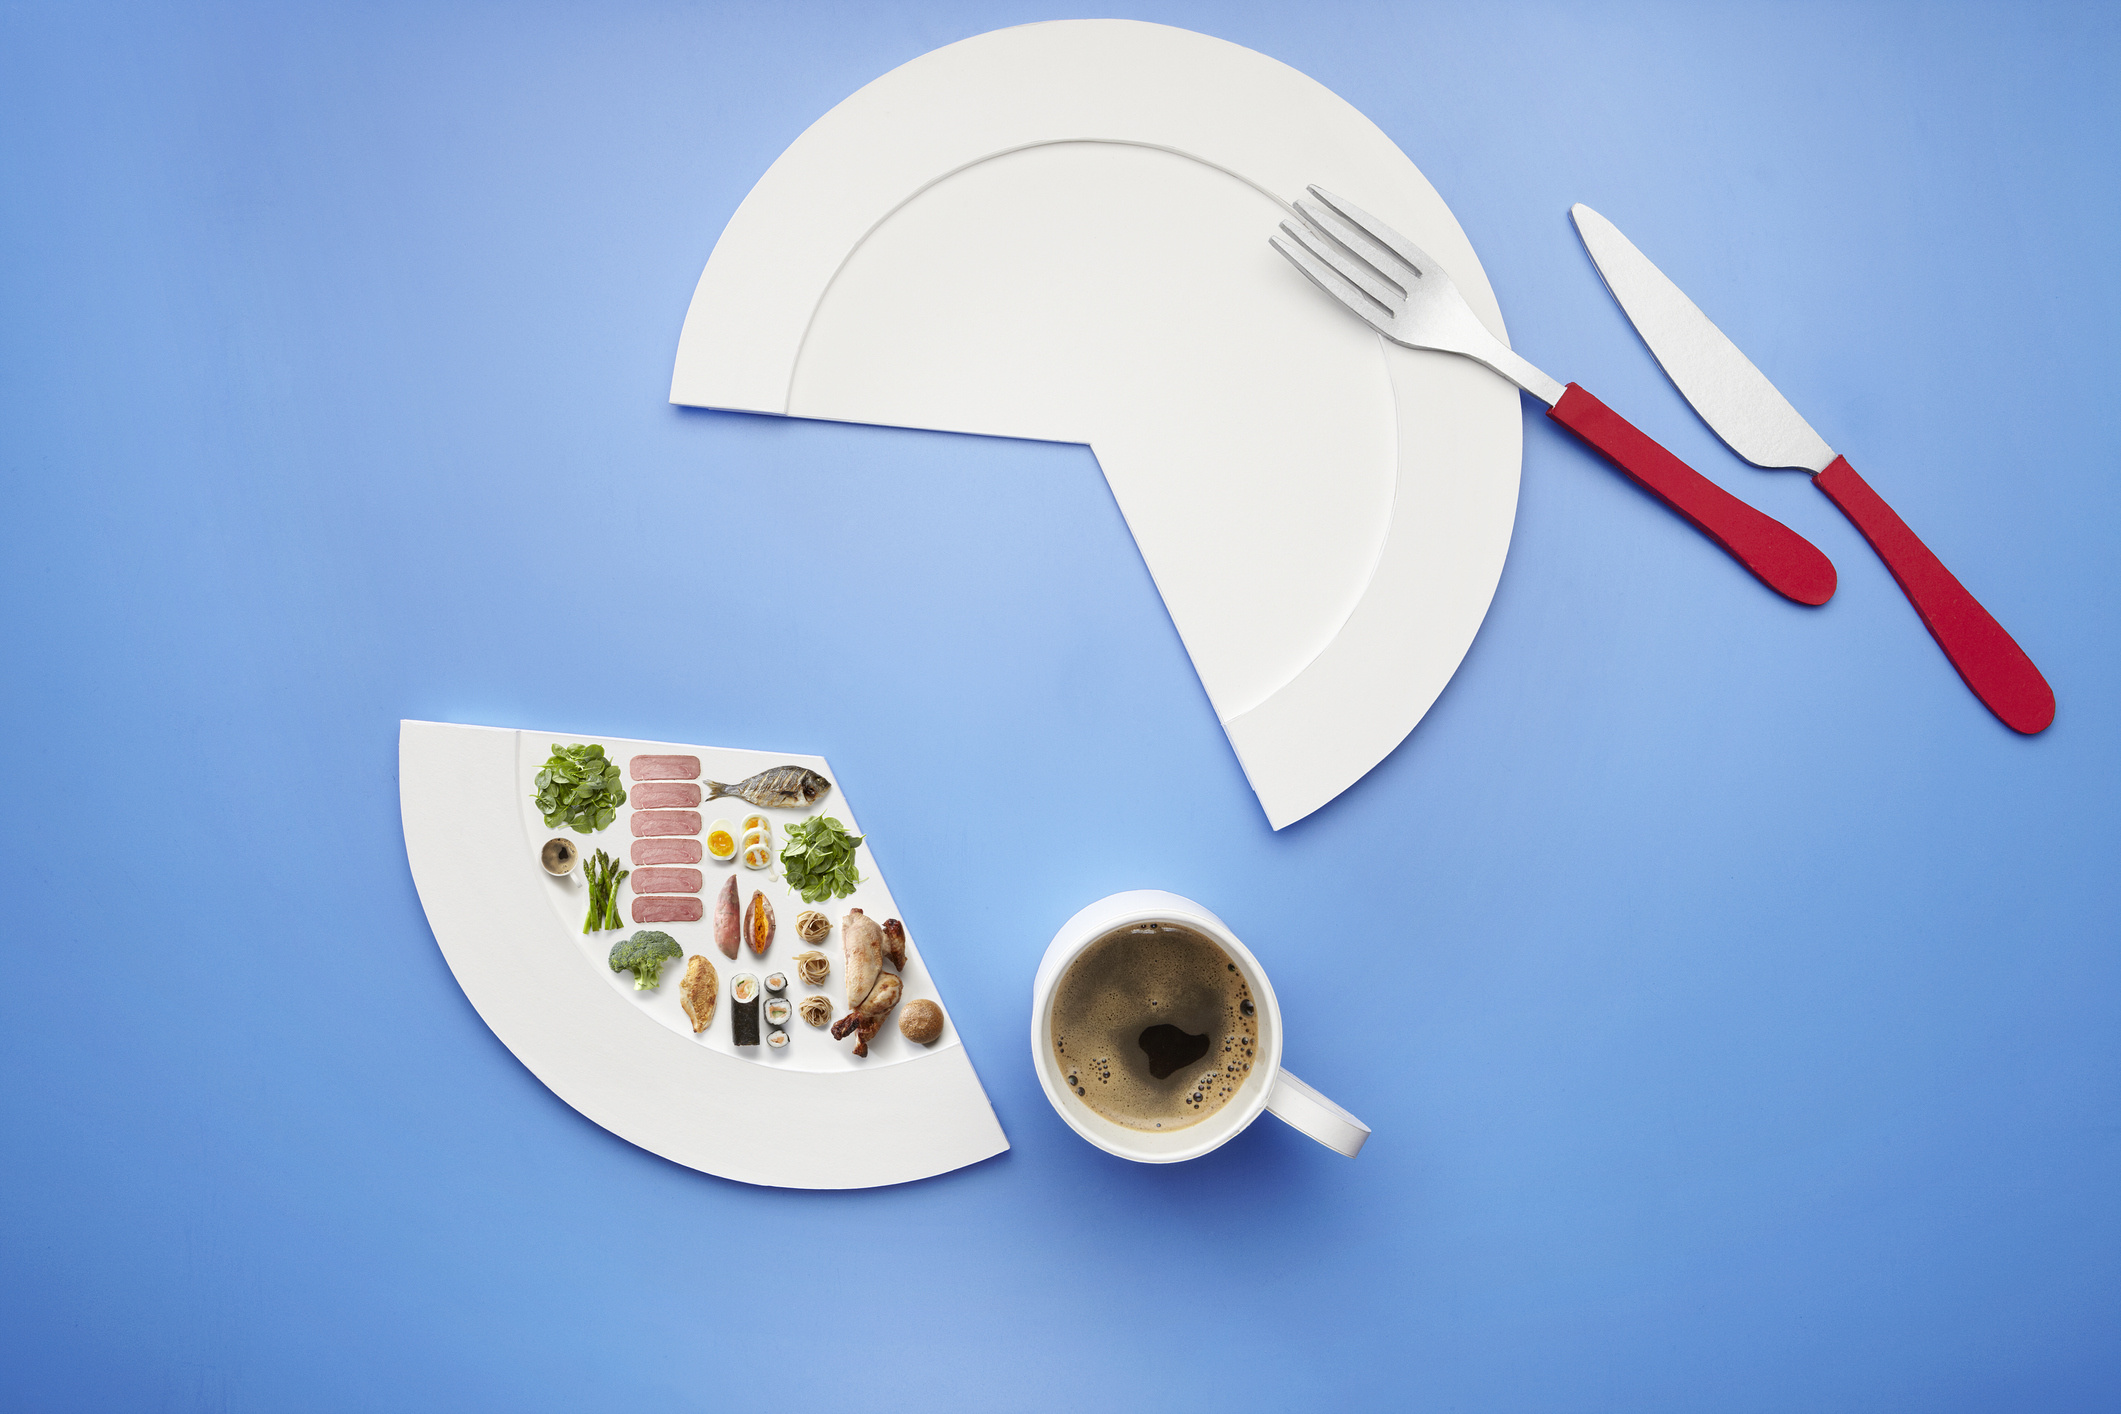 Why we need to restrict calories right now